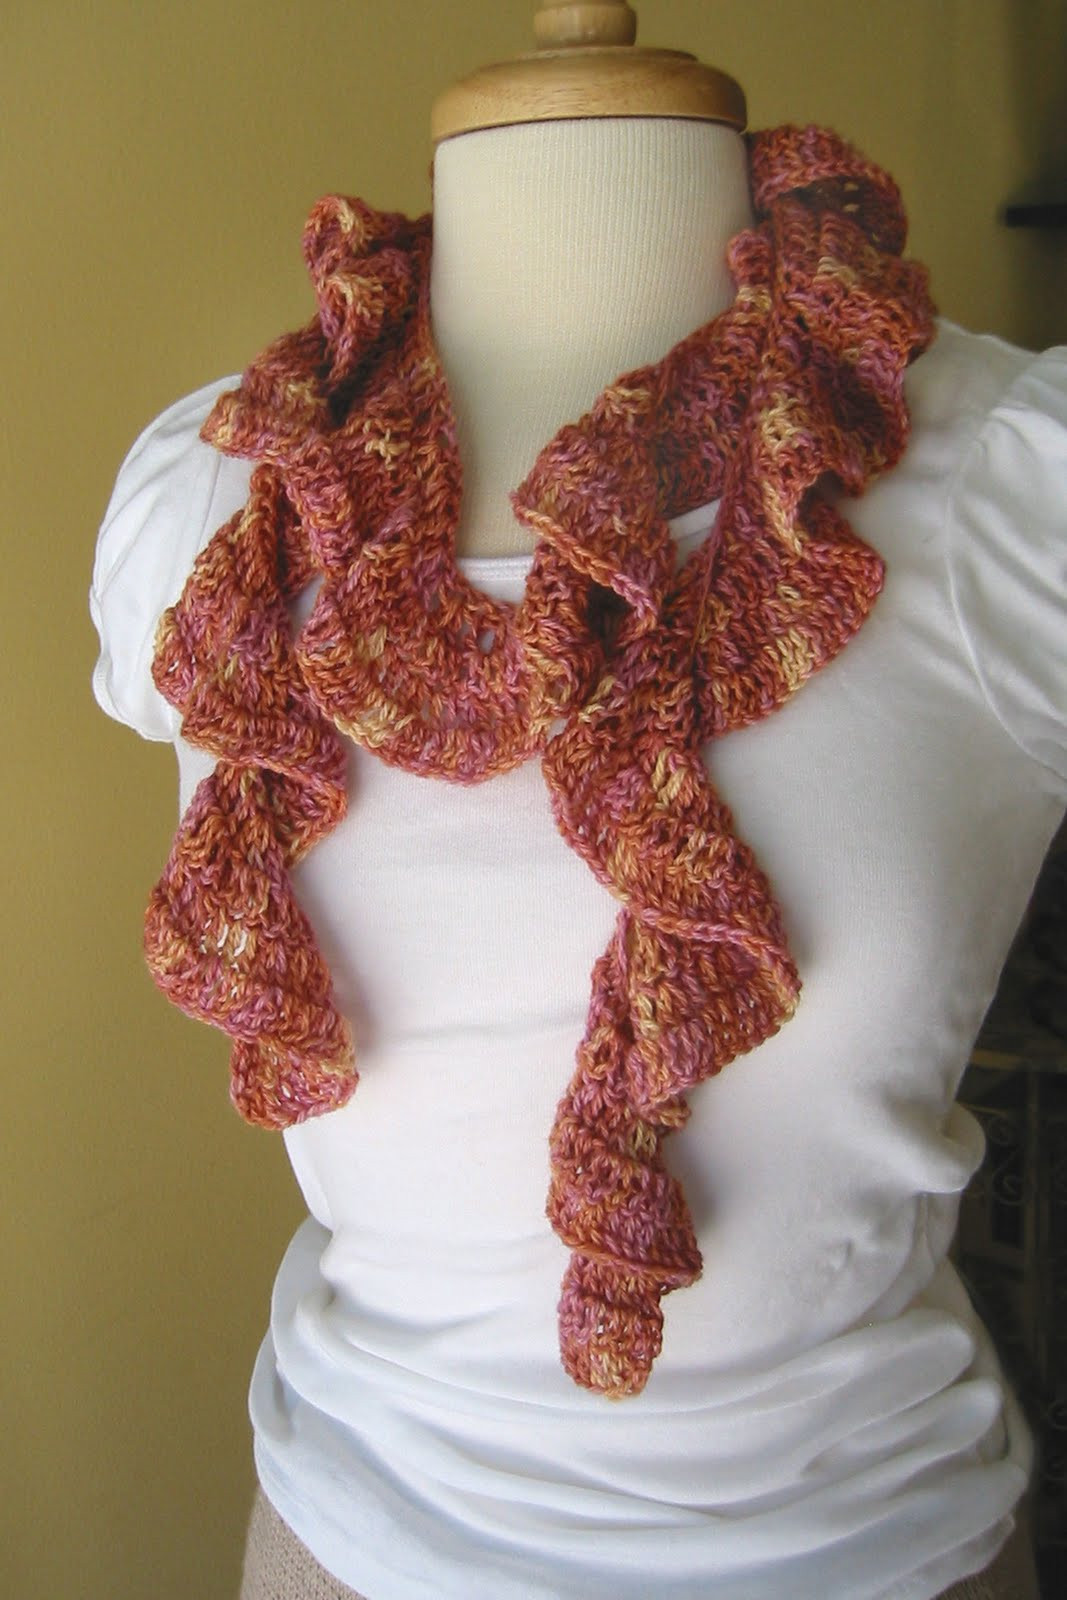 Elegant Ruffle Spiral Crochet Scarf Pattern – Easy Crochet Patterns Crochet Ruffle Scarf Of Inspirational Firehawke Hooks and Needles Free Pattern Ruffle Scarf Crochet Ruffle Scarf